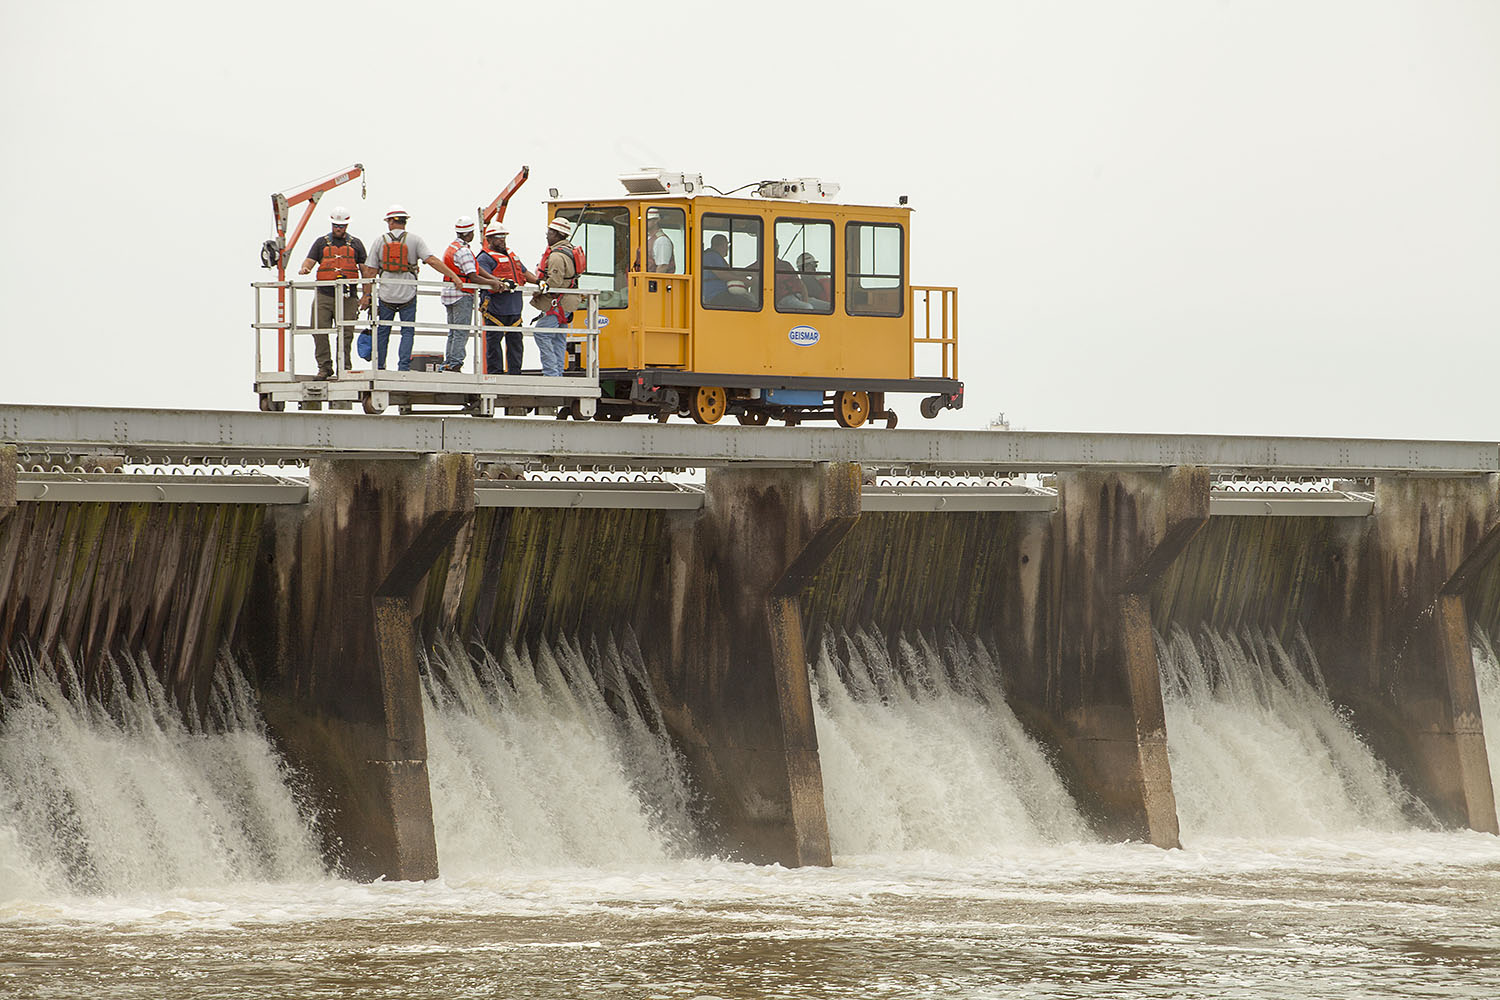 As River Rises, Corps Begins Reopening Bonnet Carré Spillway